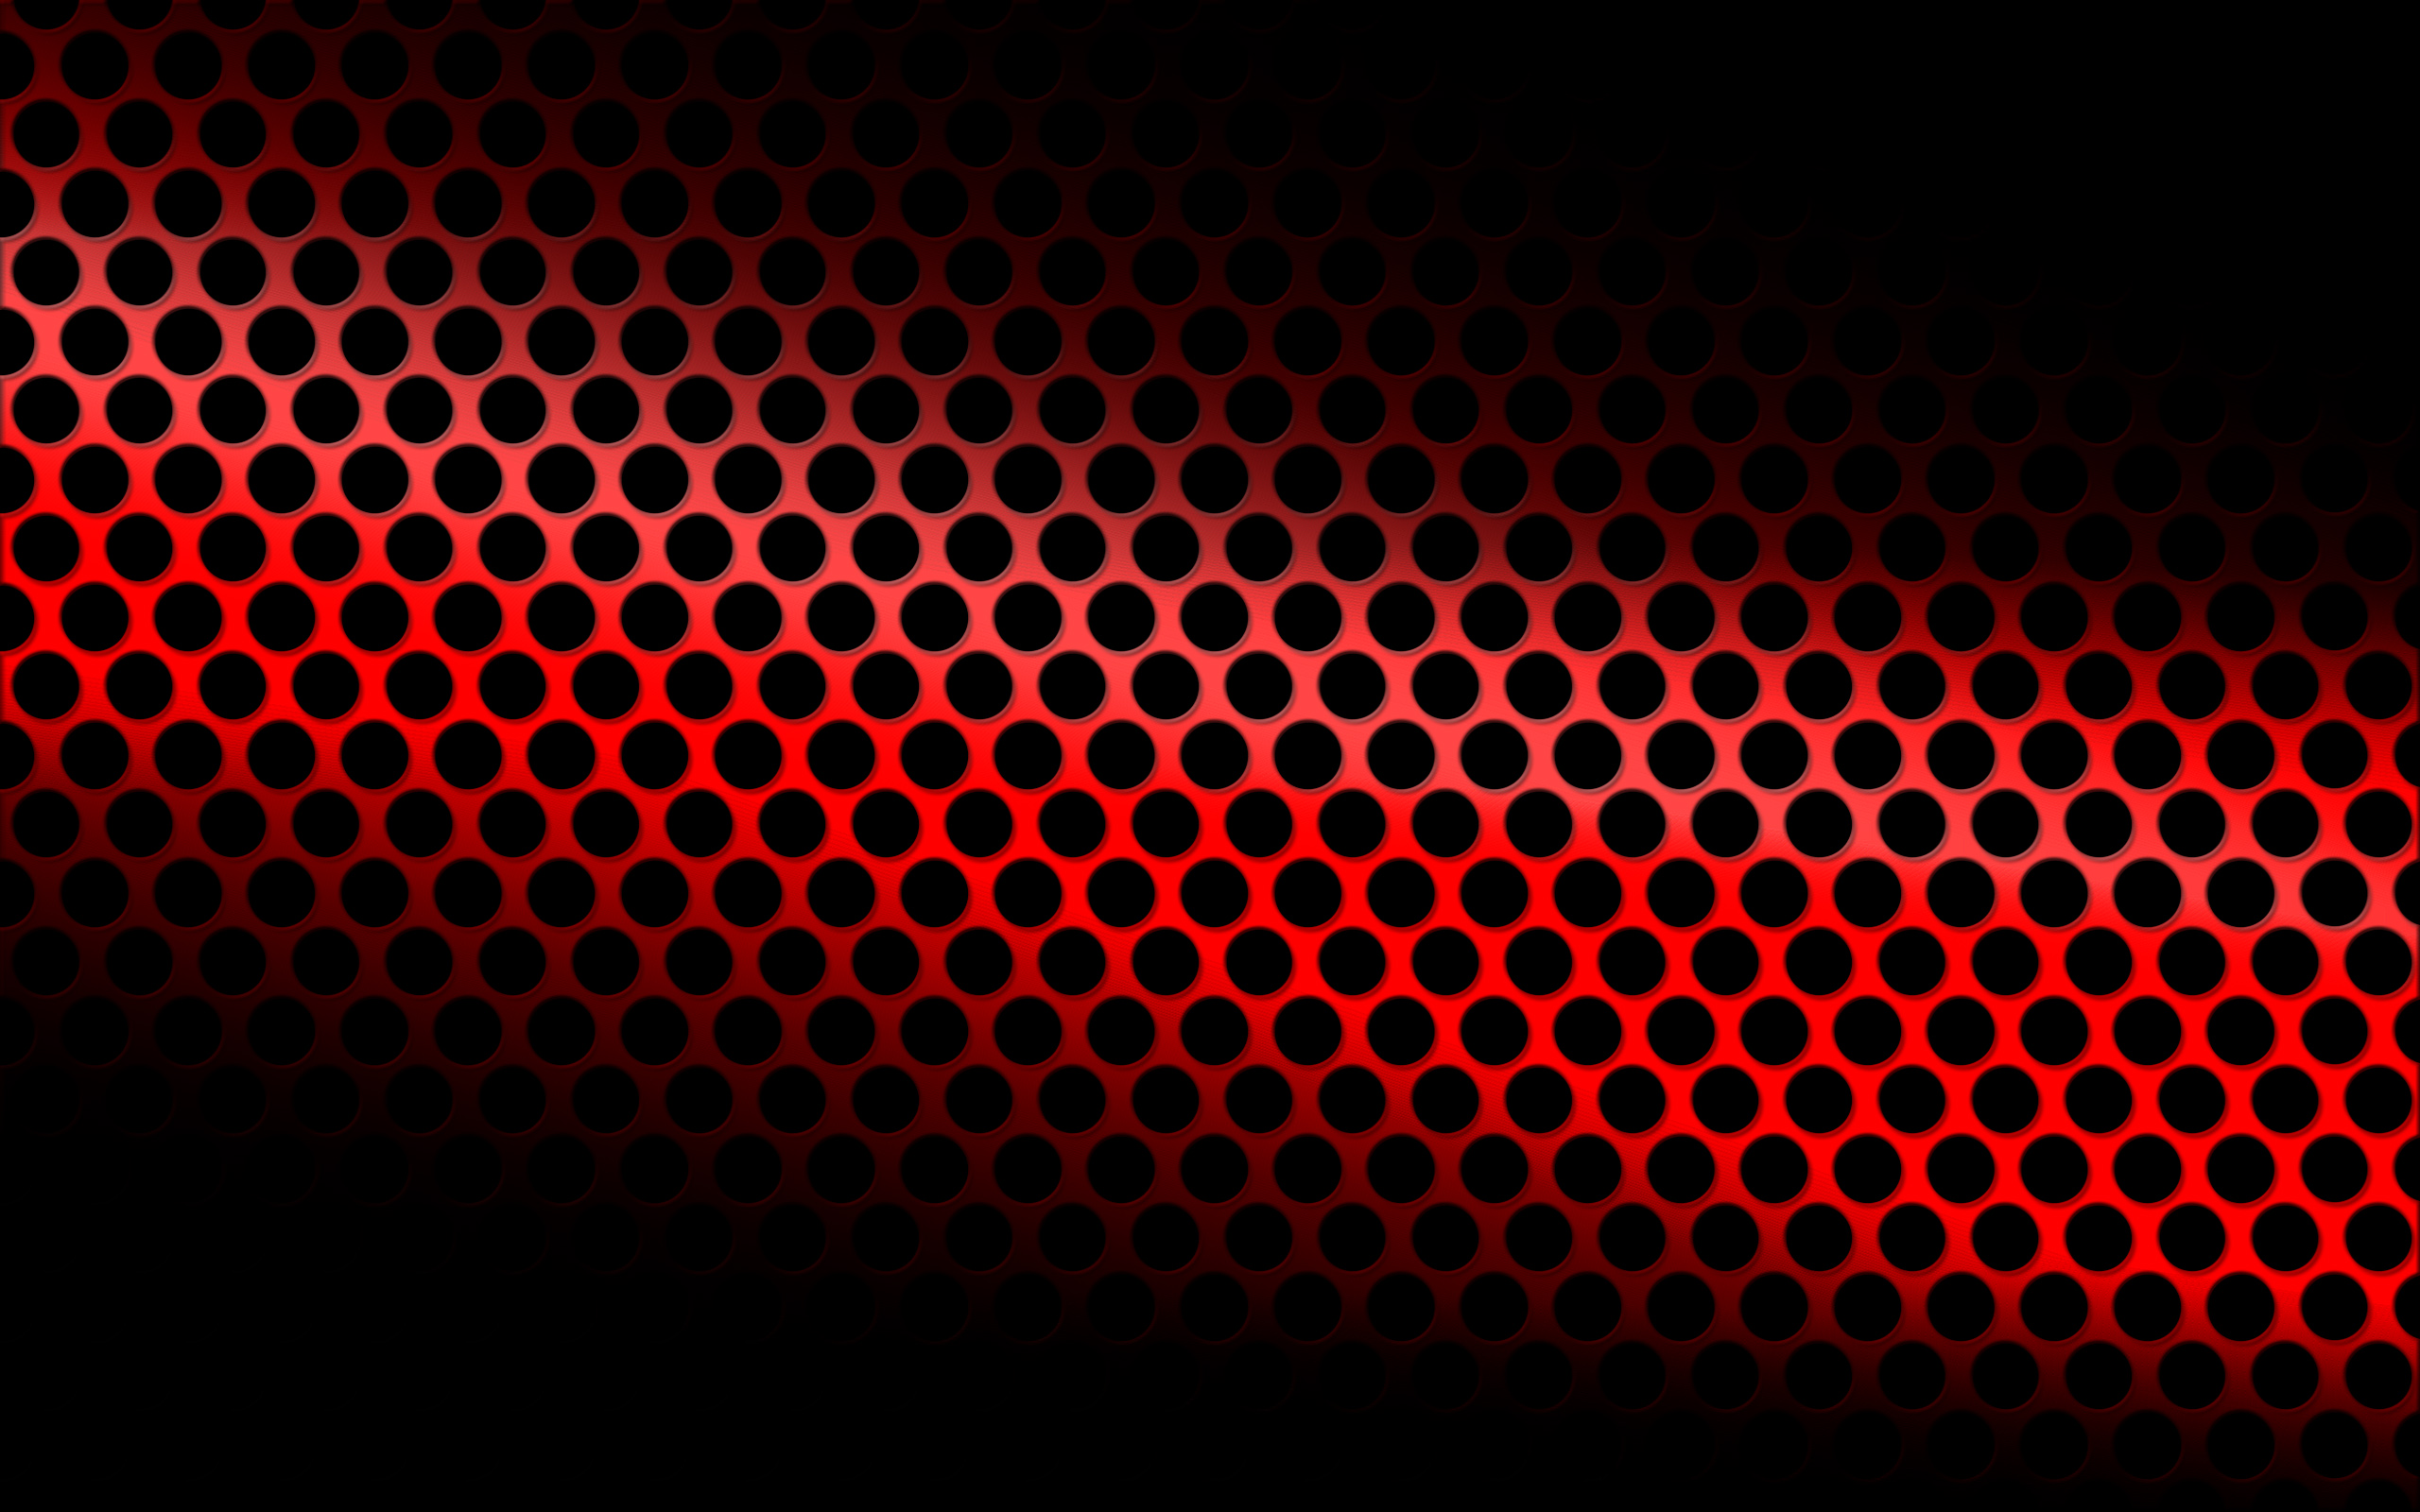 red and black iphone wallpaper iphone wallpaper black and 8 widescreen wallpaper 17946